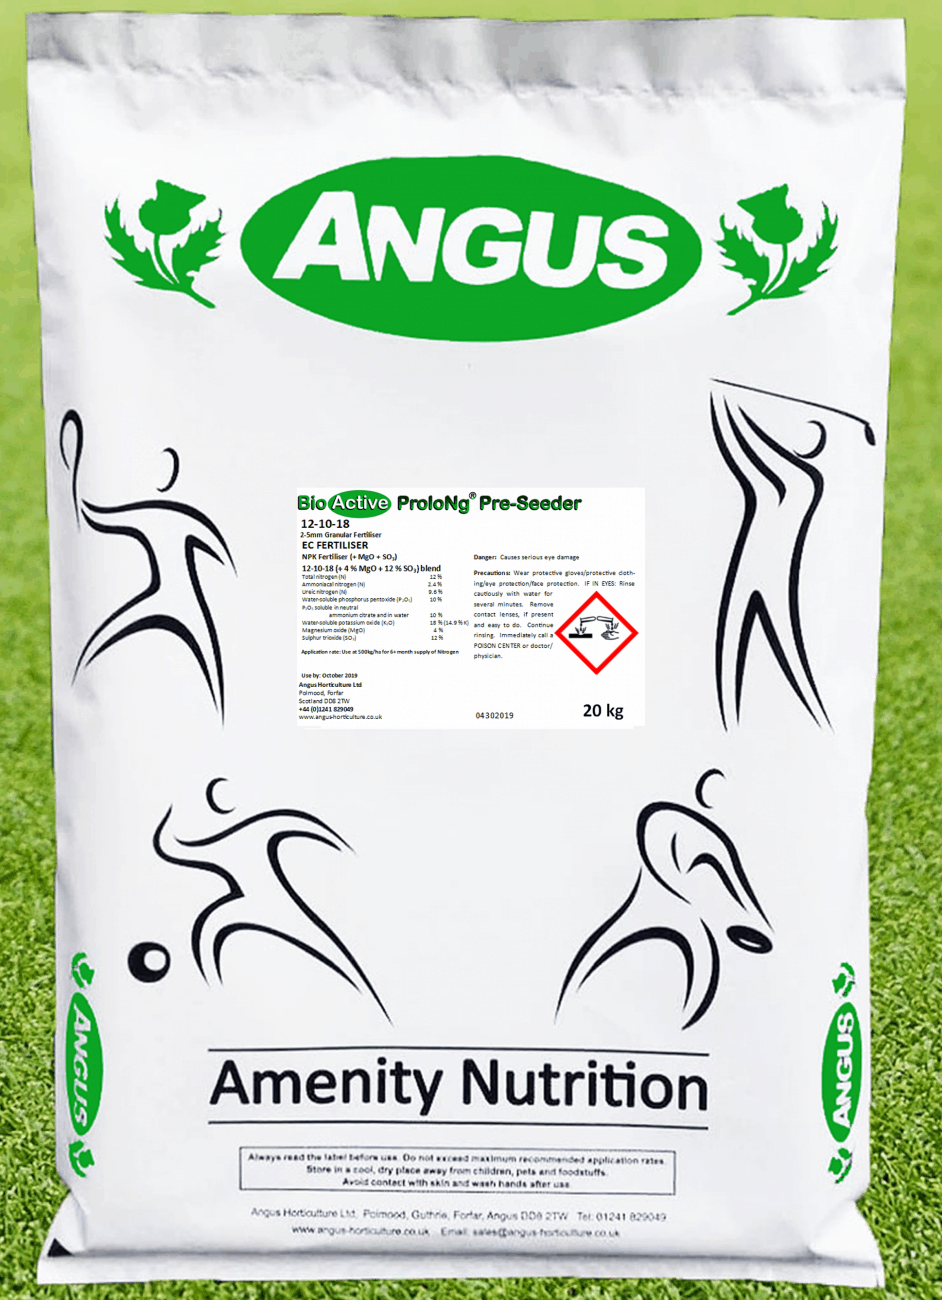 Product image of BioActive ProloNg® Pre-Seeder 12-10-18